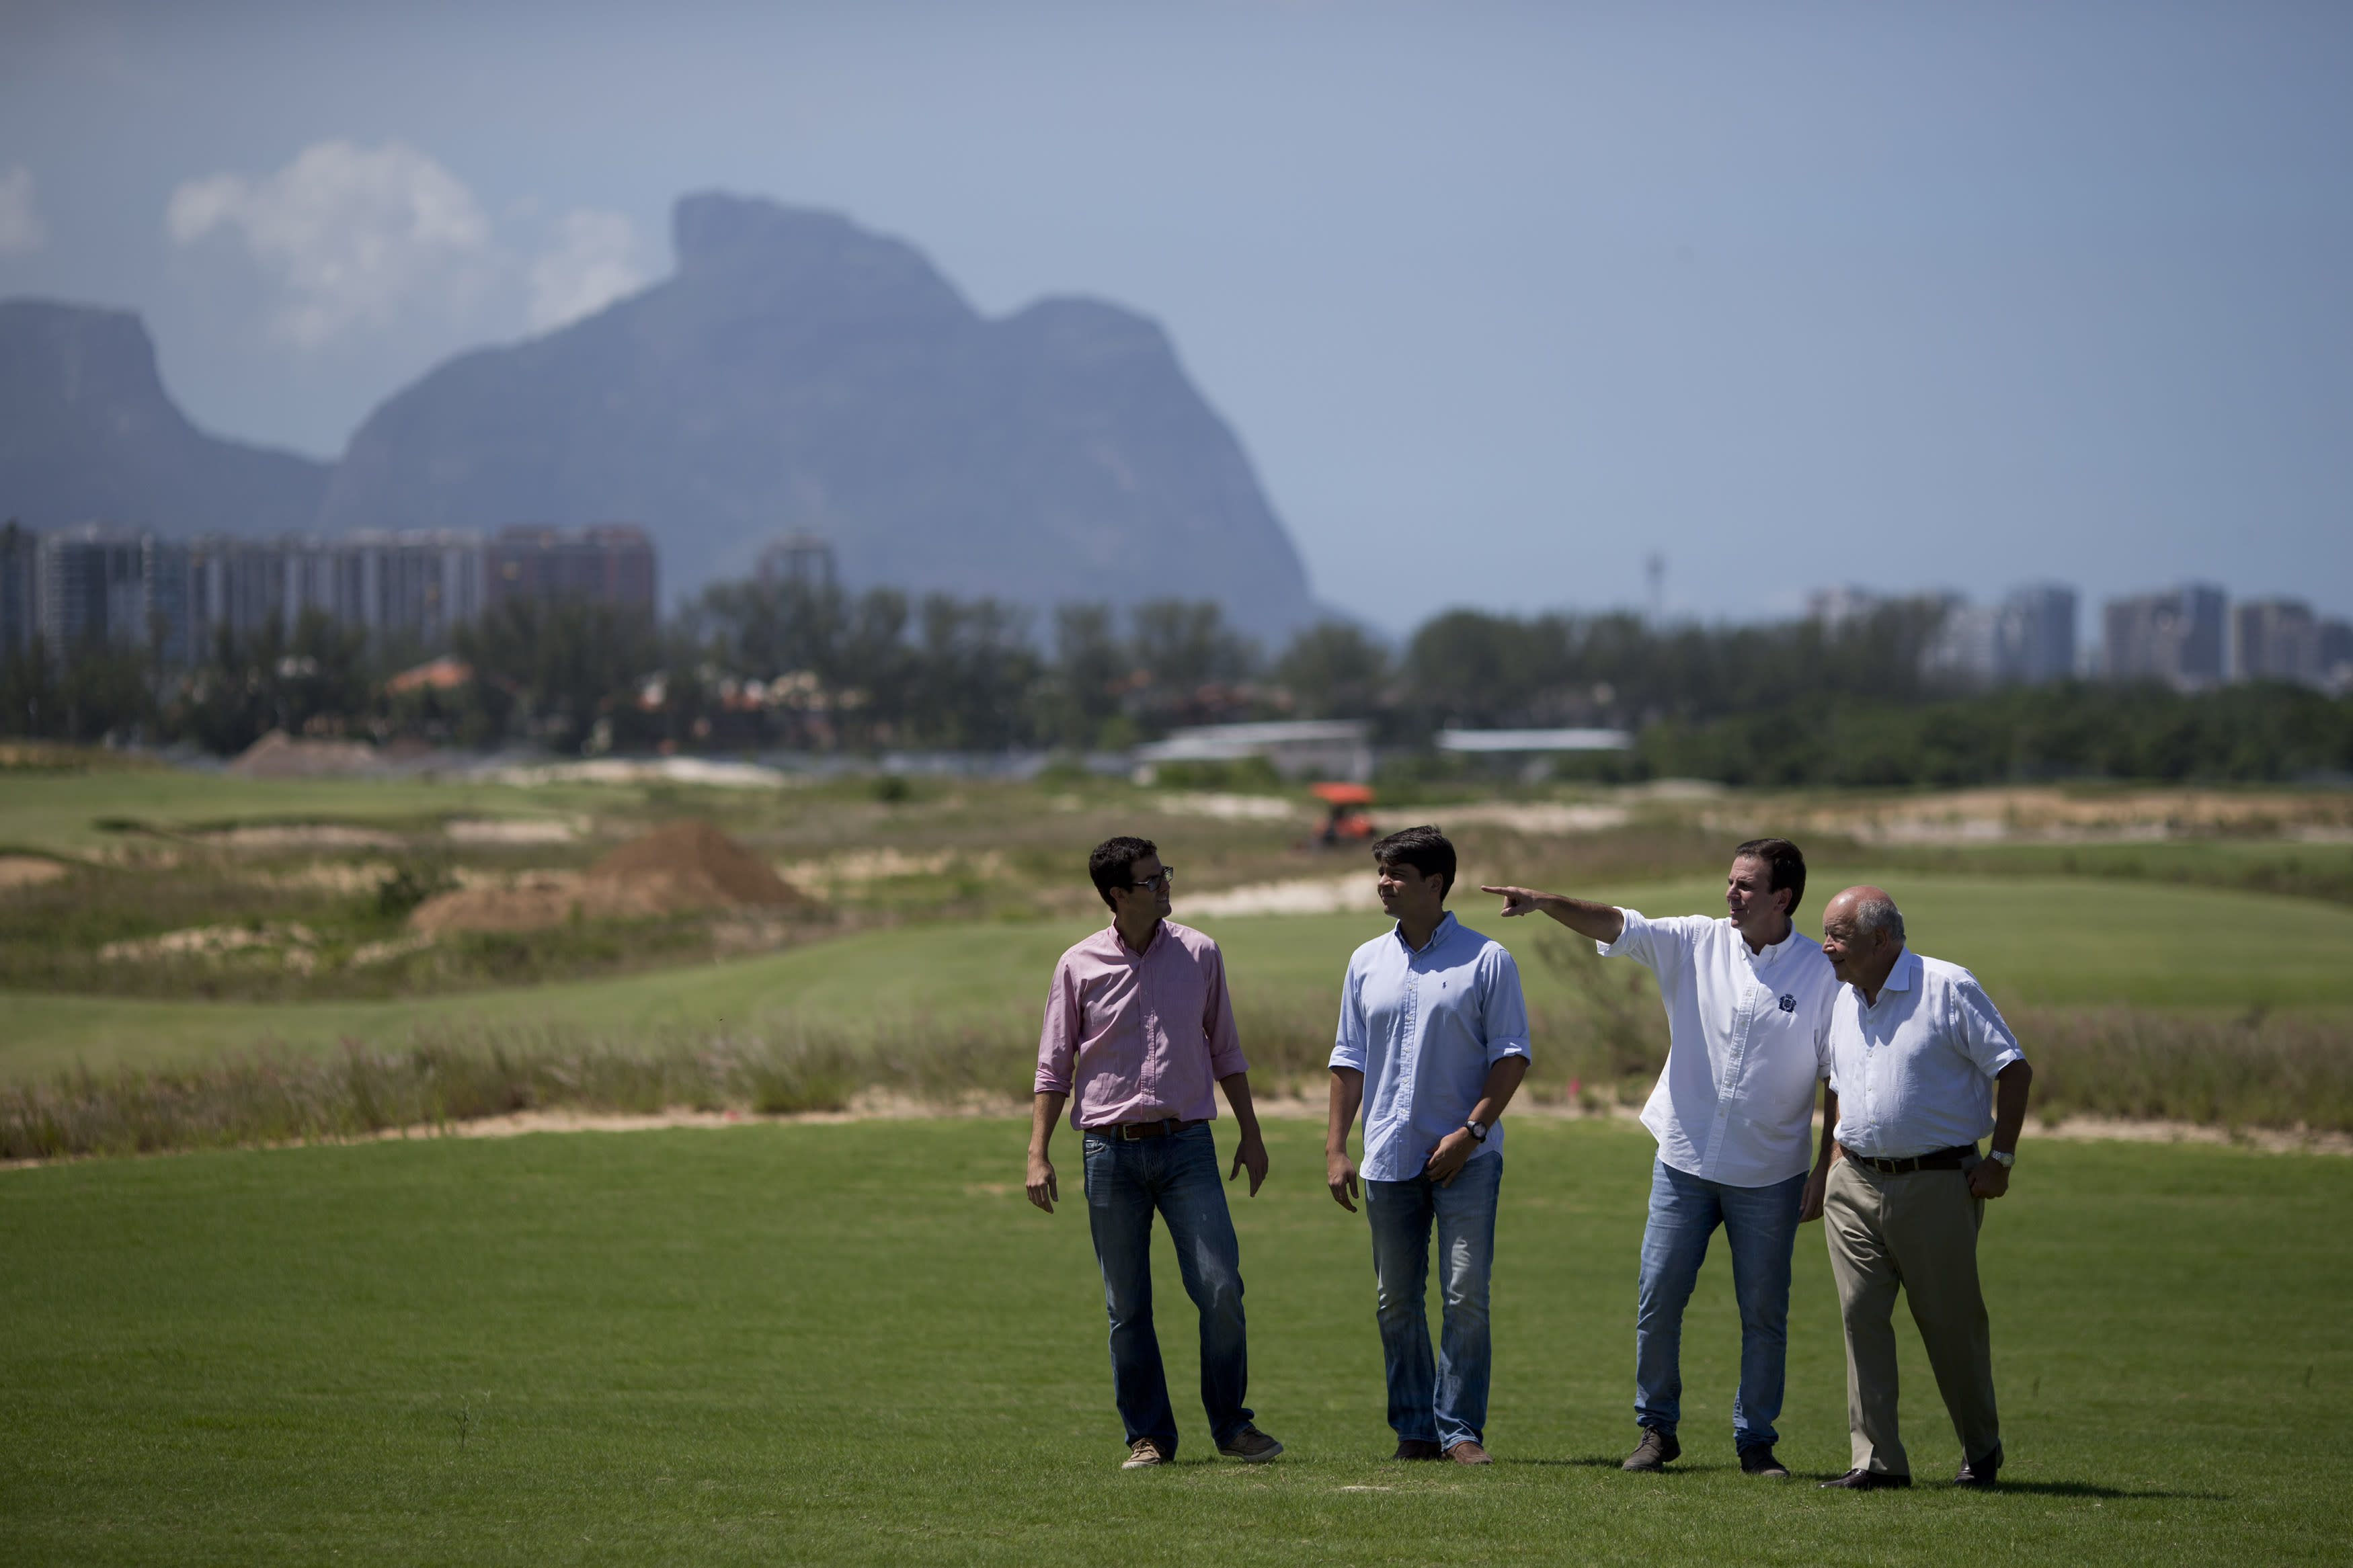 Rio mayor unveils controversial Olympic golf course